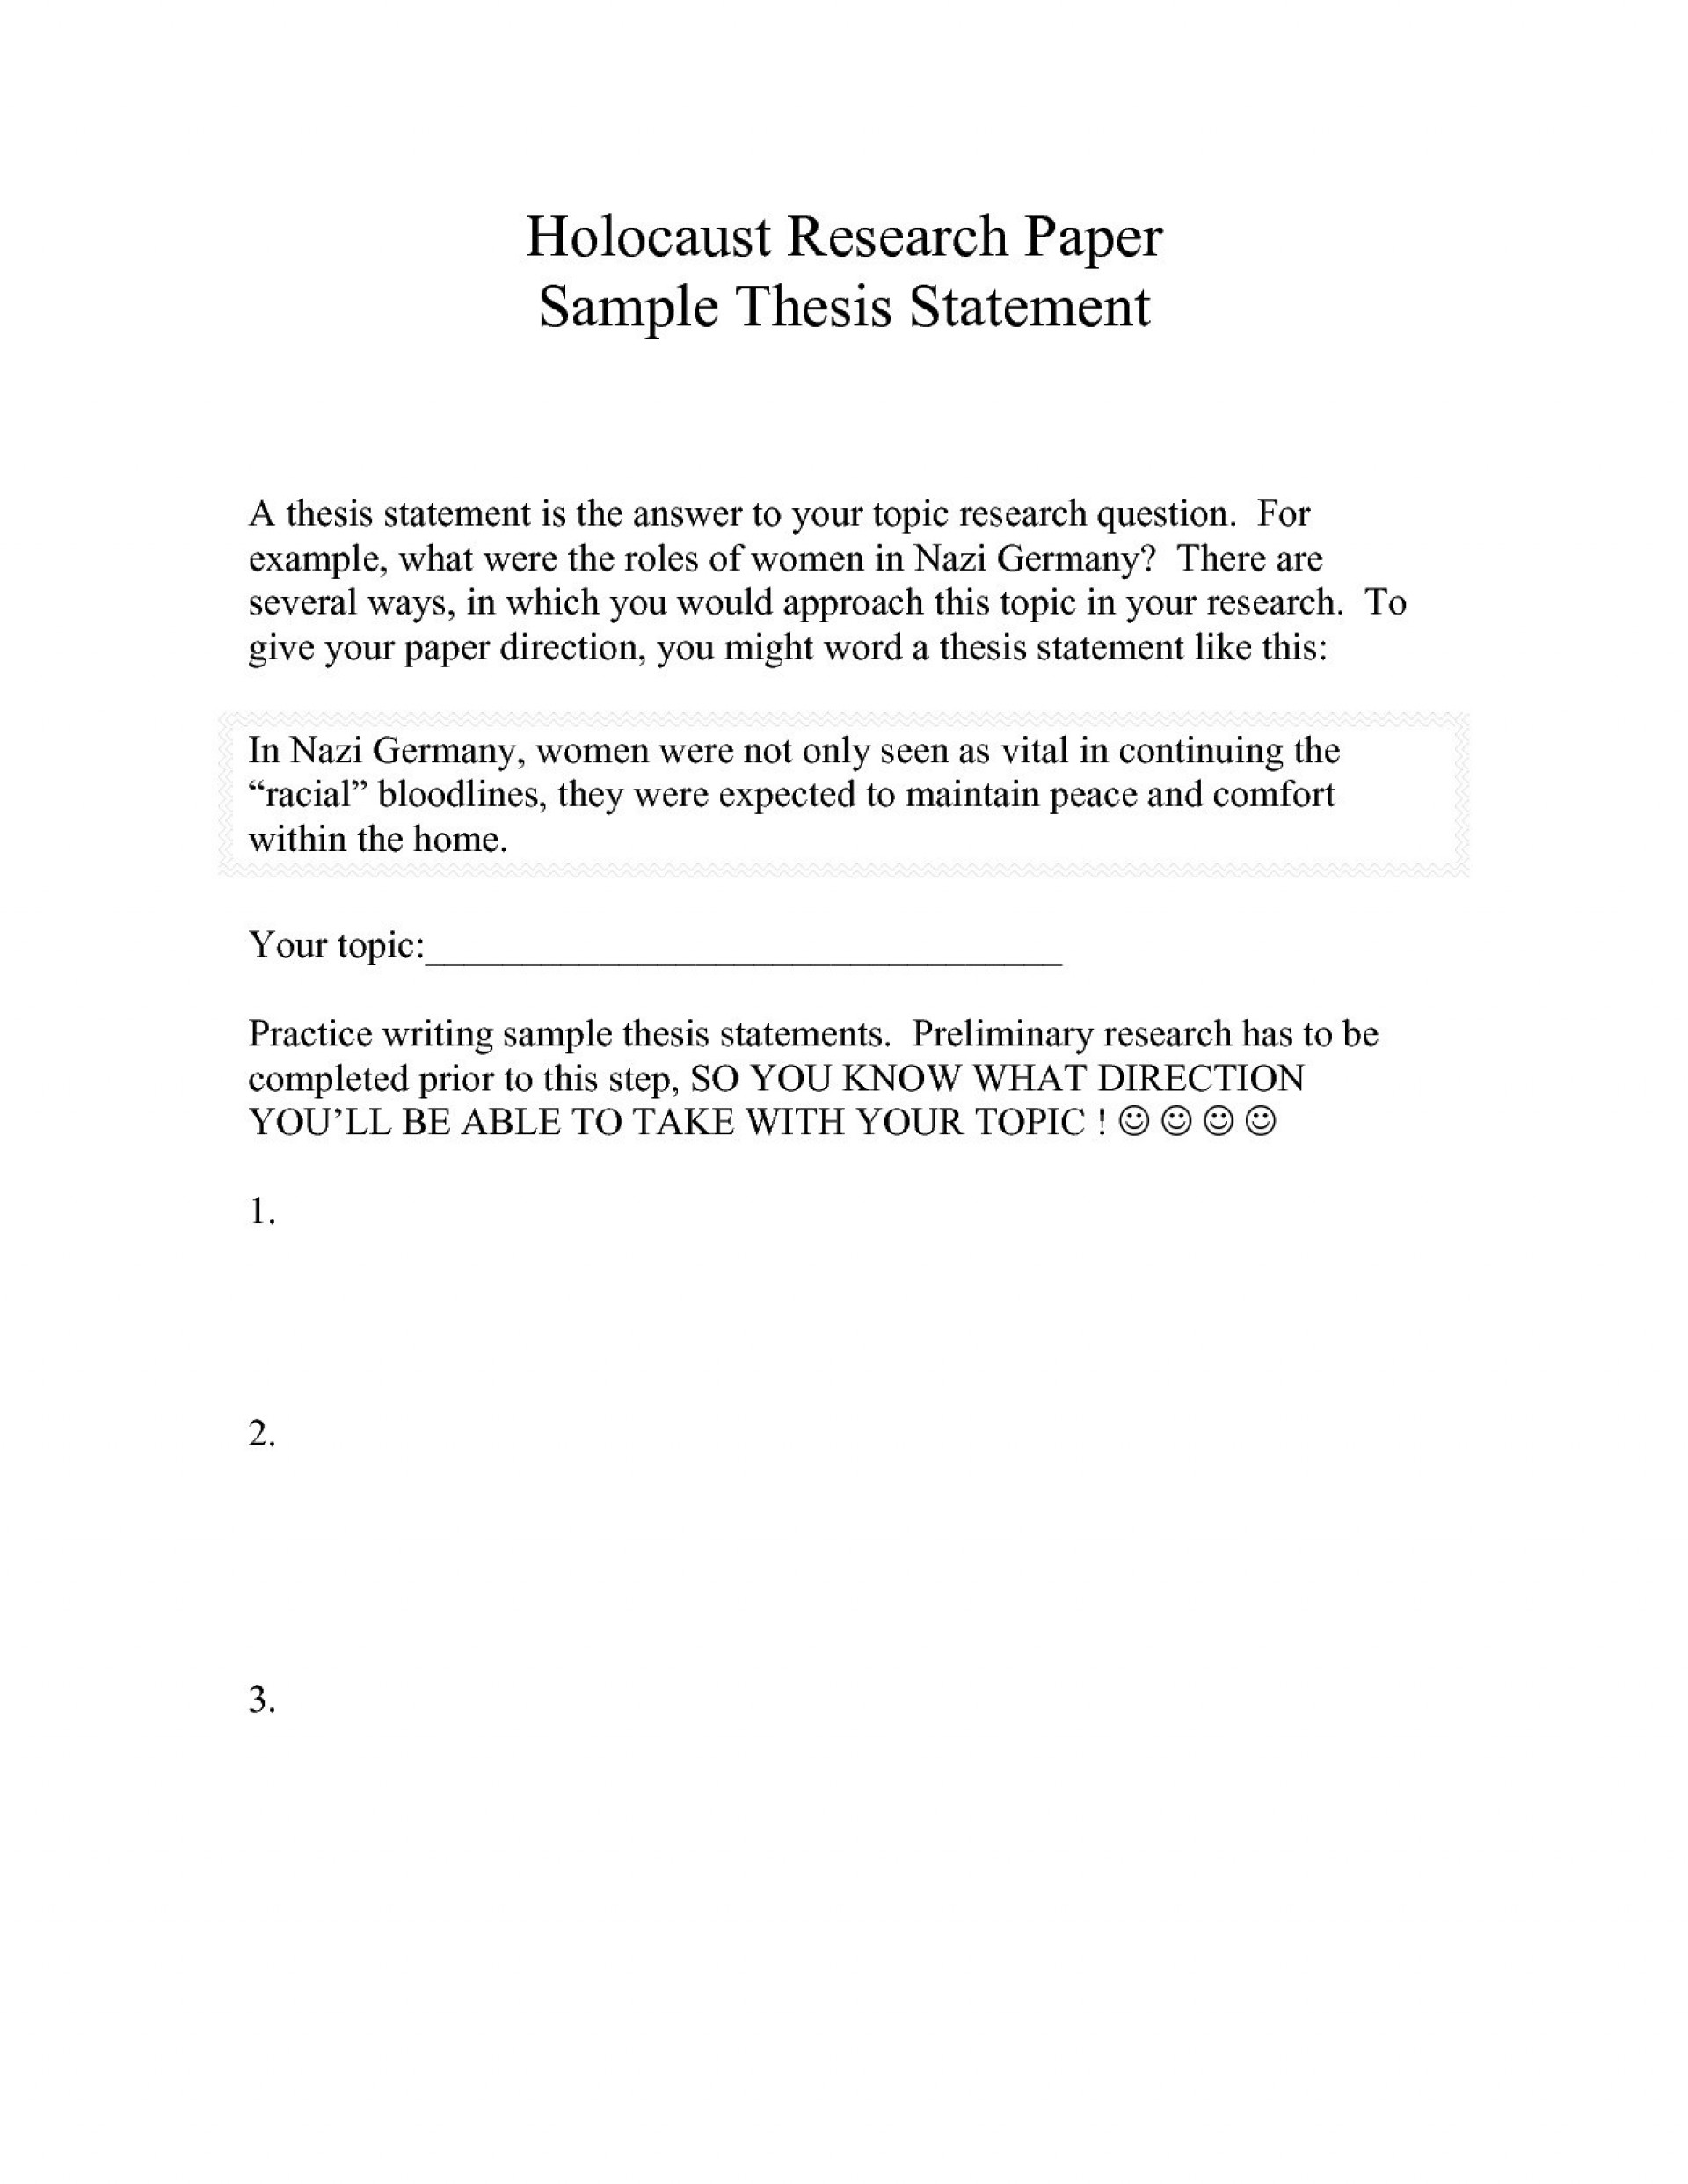 007 Science And Religion Essay Thesis Statement Examples Essays With Pertaining To For Research Papers Paper Good Exceptional Statements Psychology My 1920